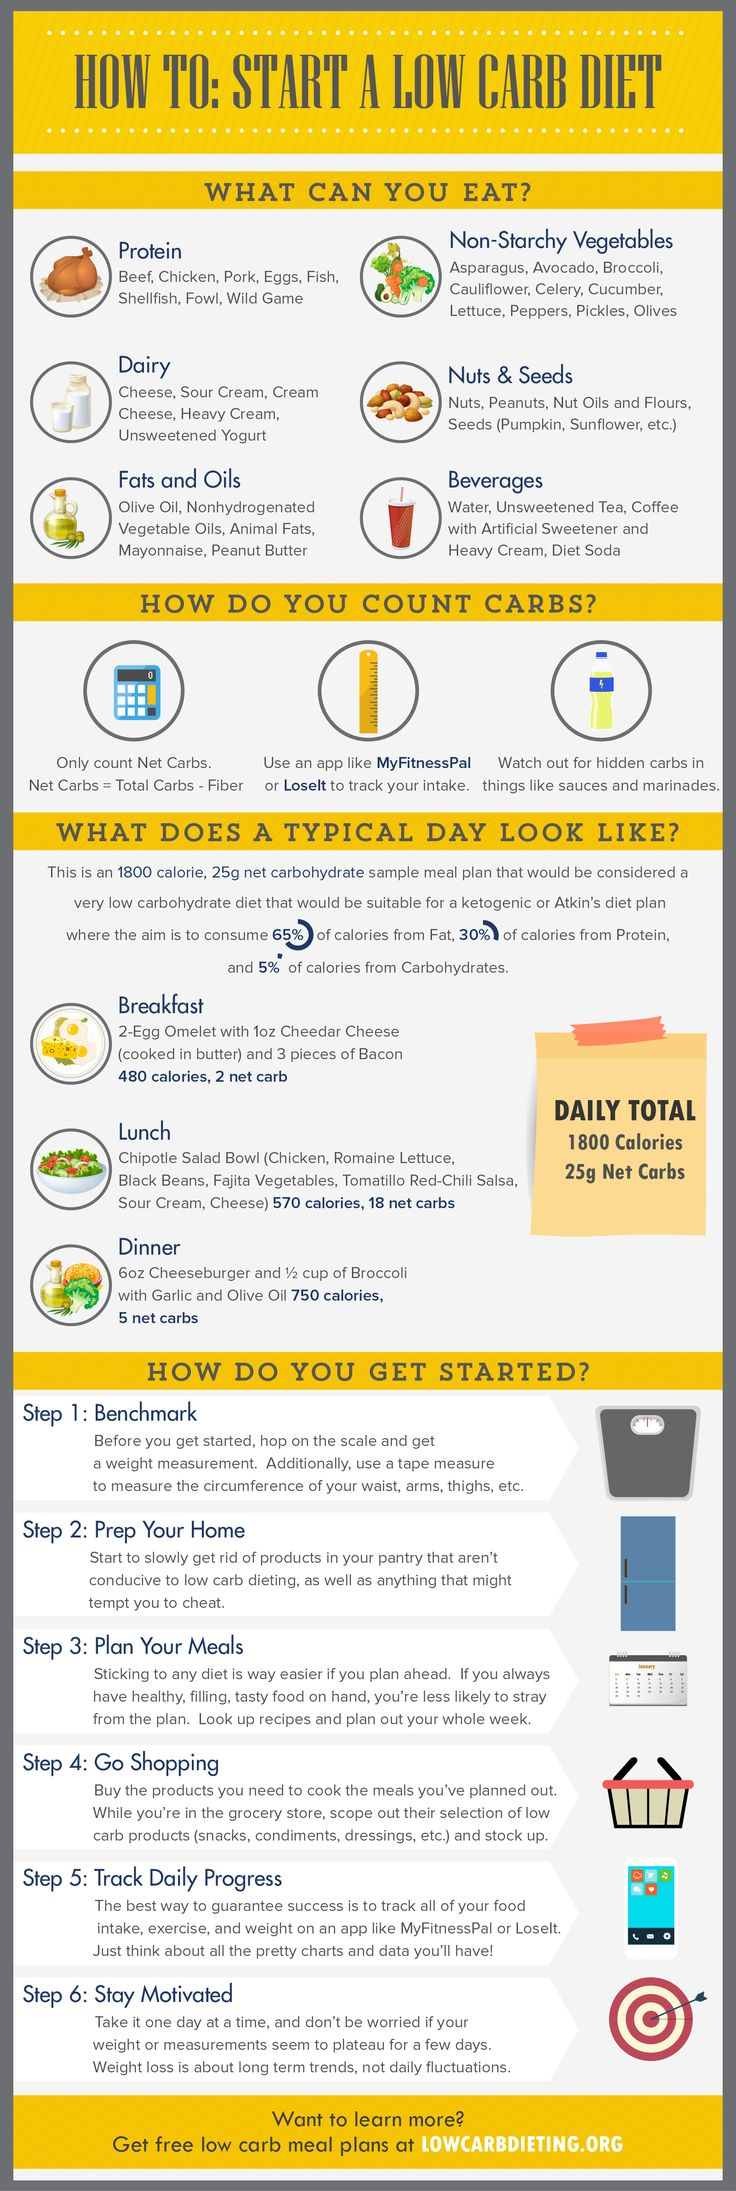 How To Start A Low Carb Diet